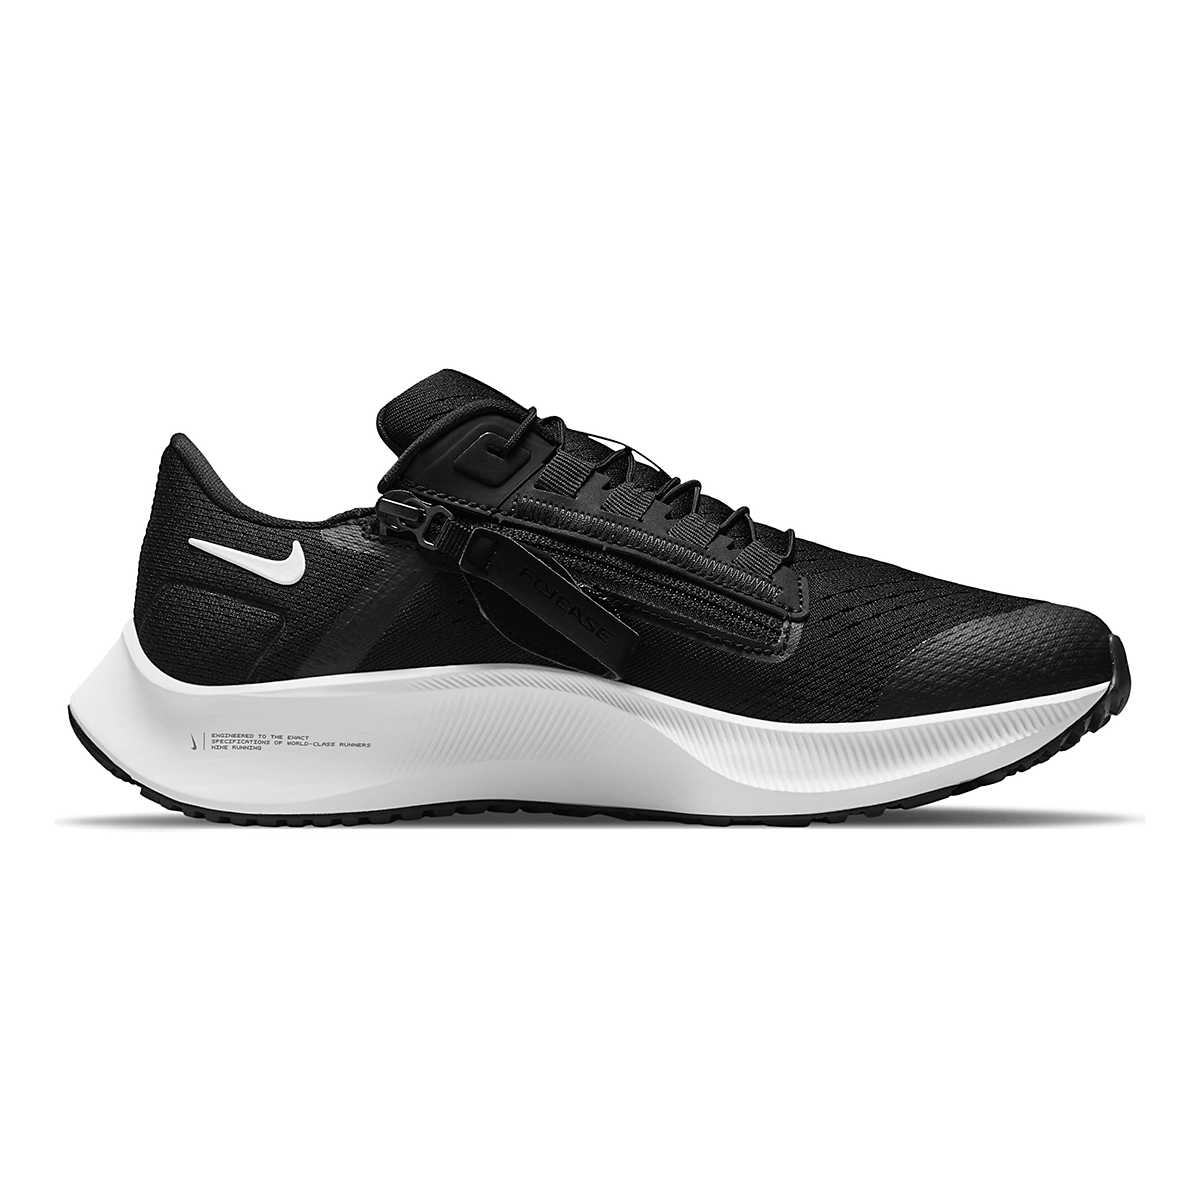 Women's Nike Air Zoom Pegasus 38 Flyease Running Shoe - Color: Black/White/Anthracite - Size: 5 - Width: Regular, Black/White/Anthracite, large, image 1